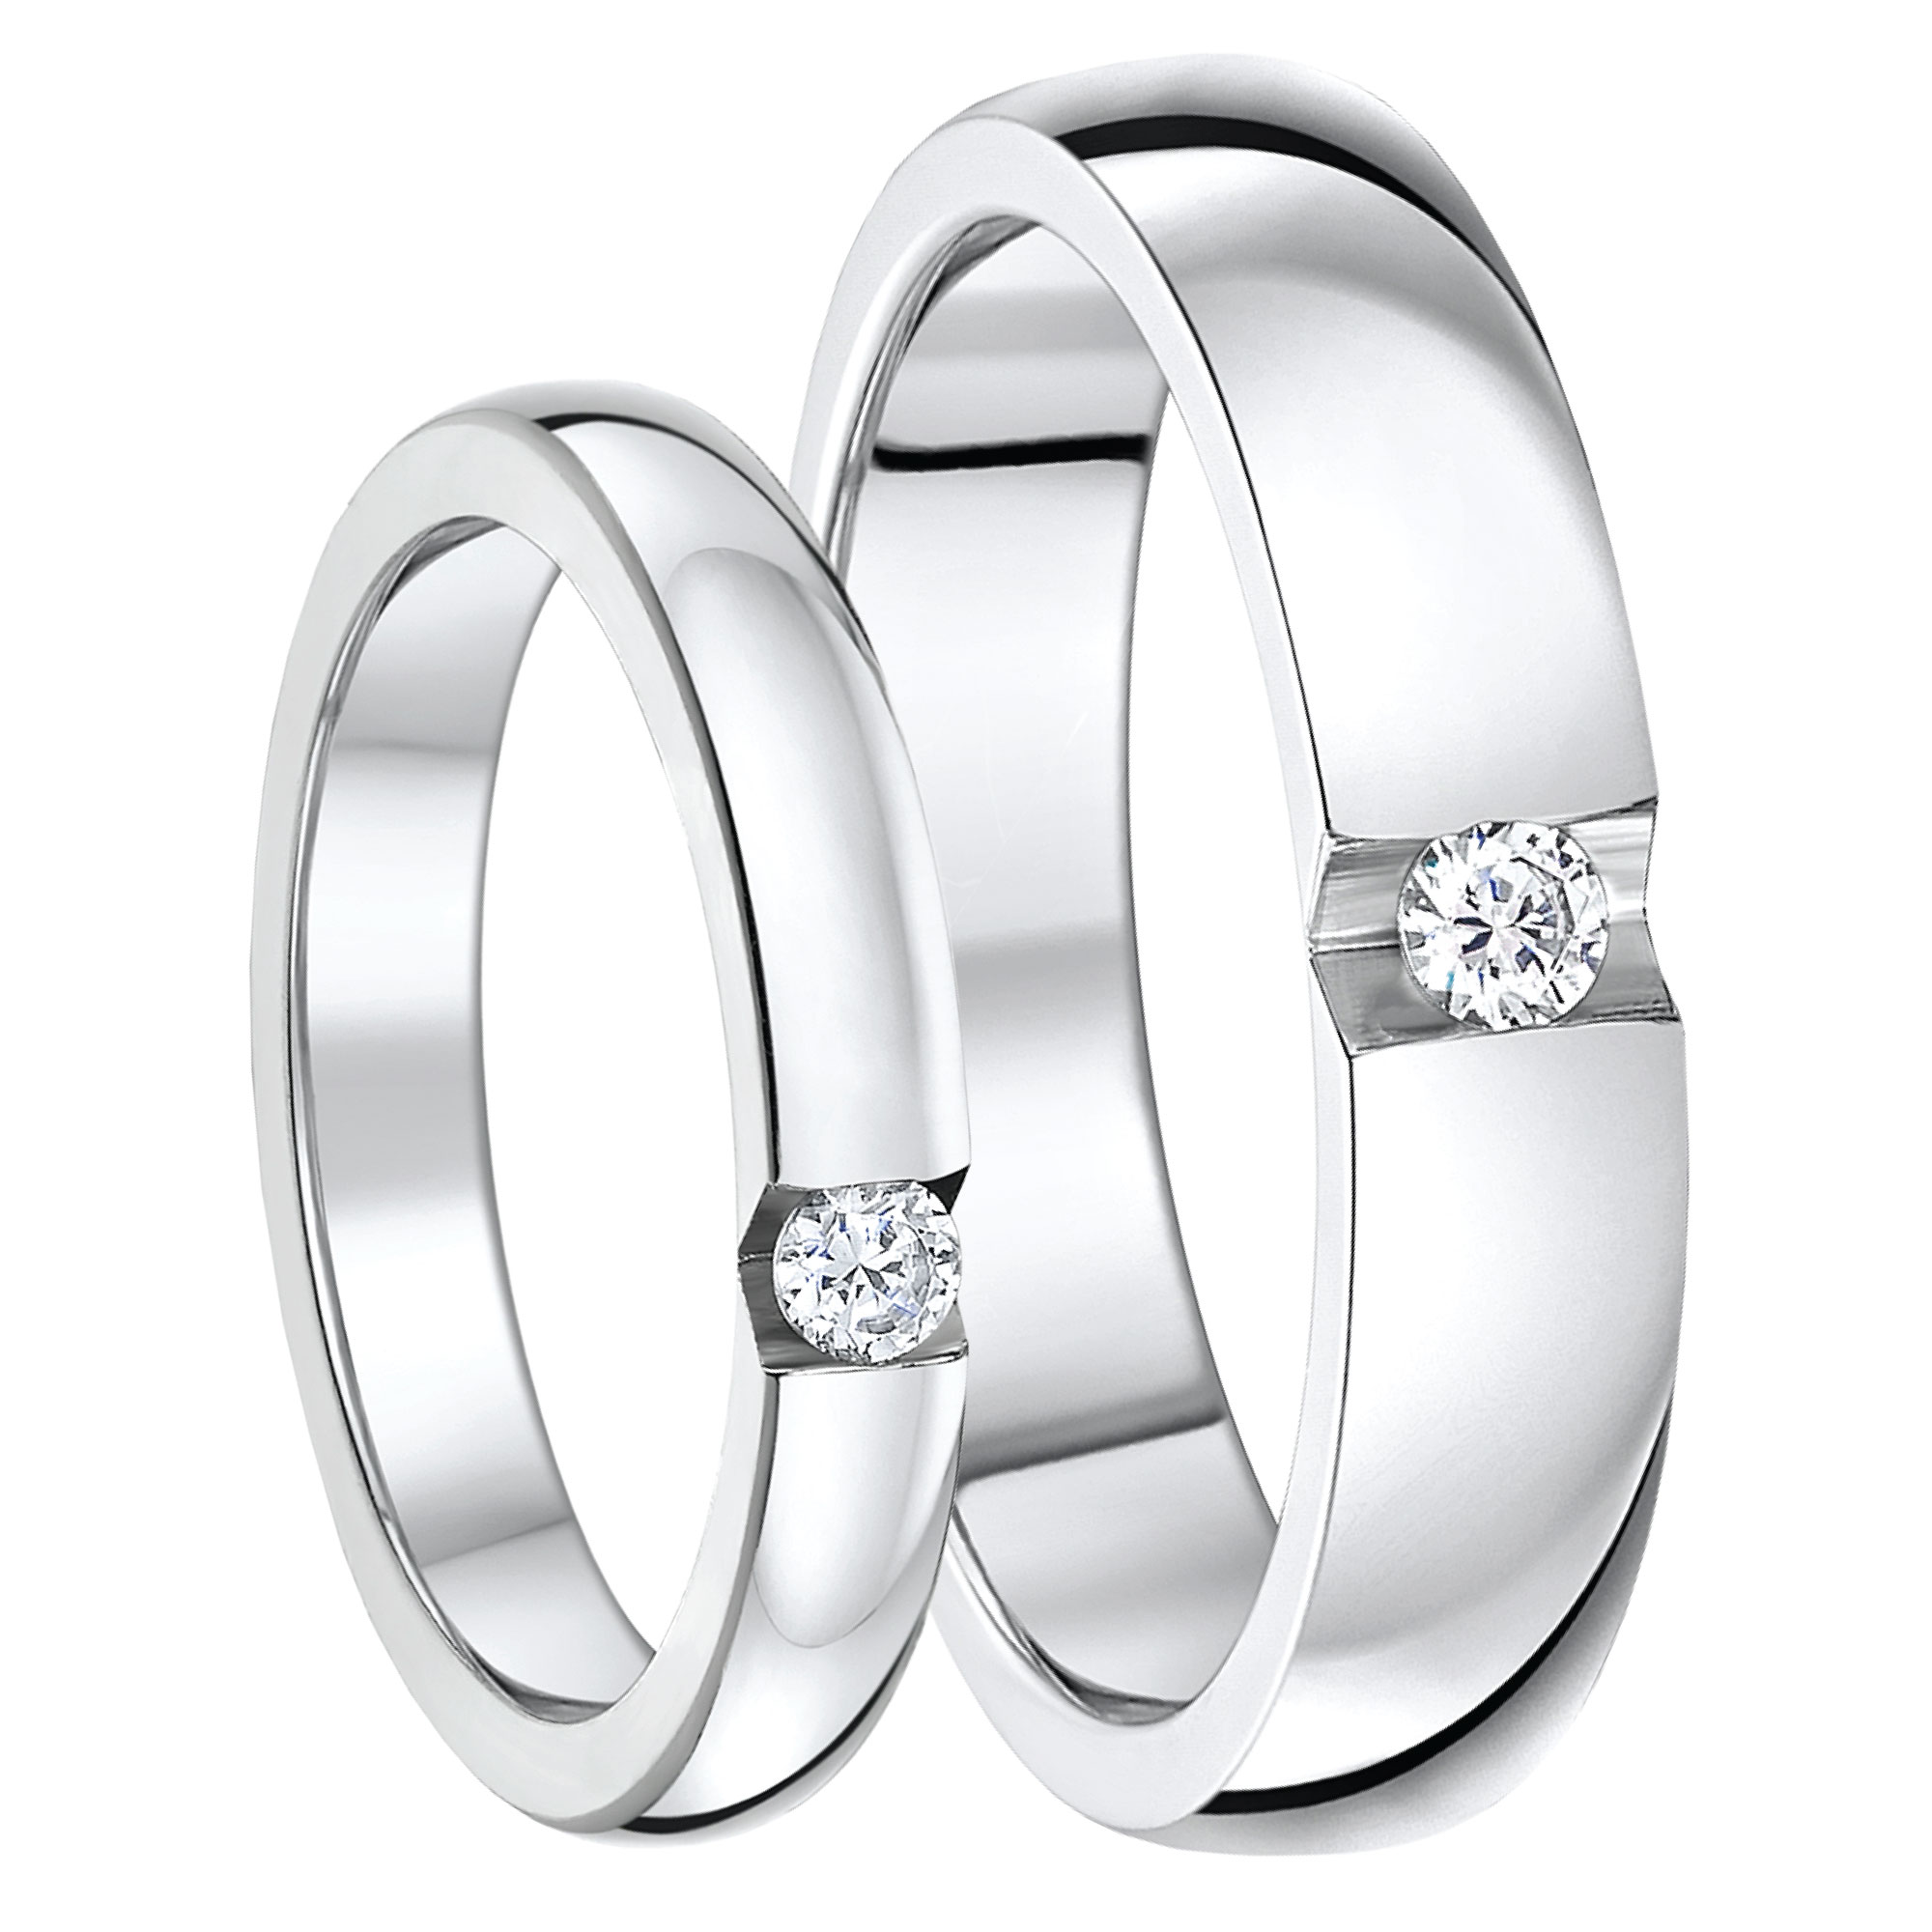 vera the ring perfect sets band choice selecting platinum wedding wang zales bands rings warranty of